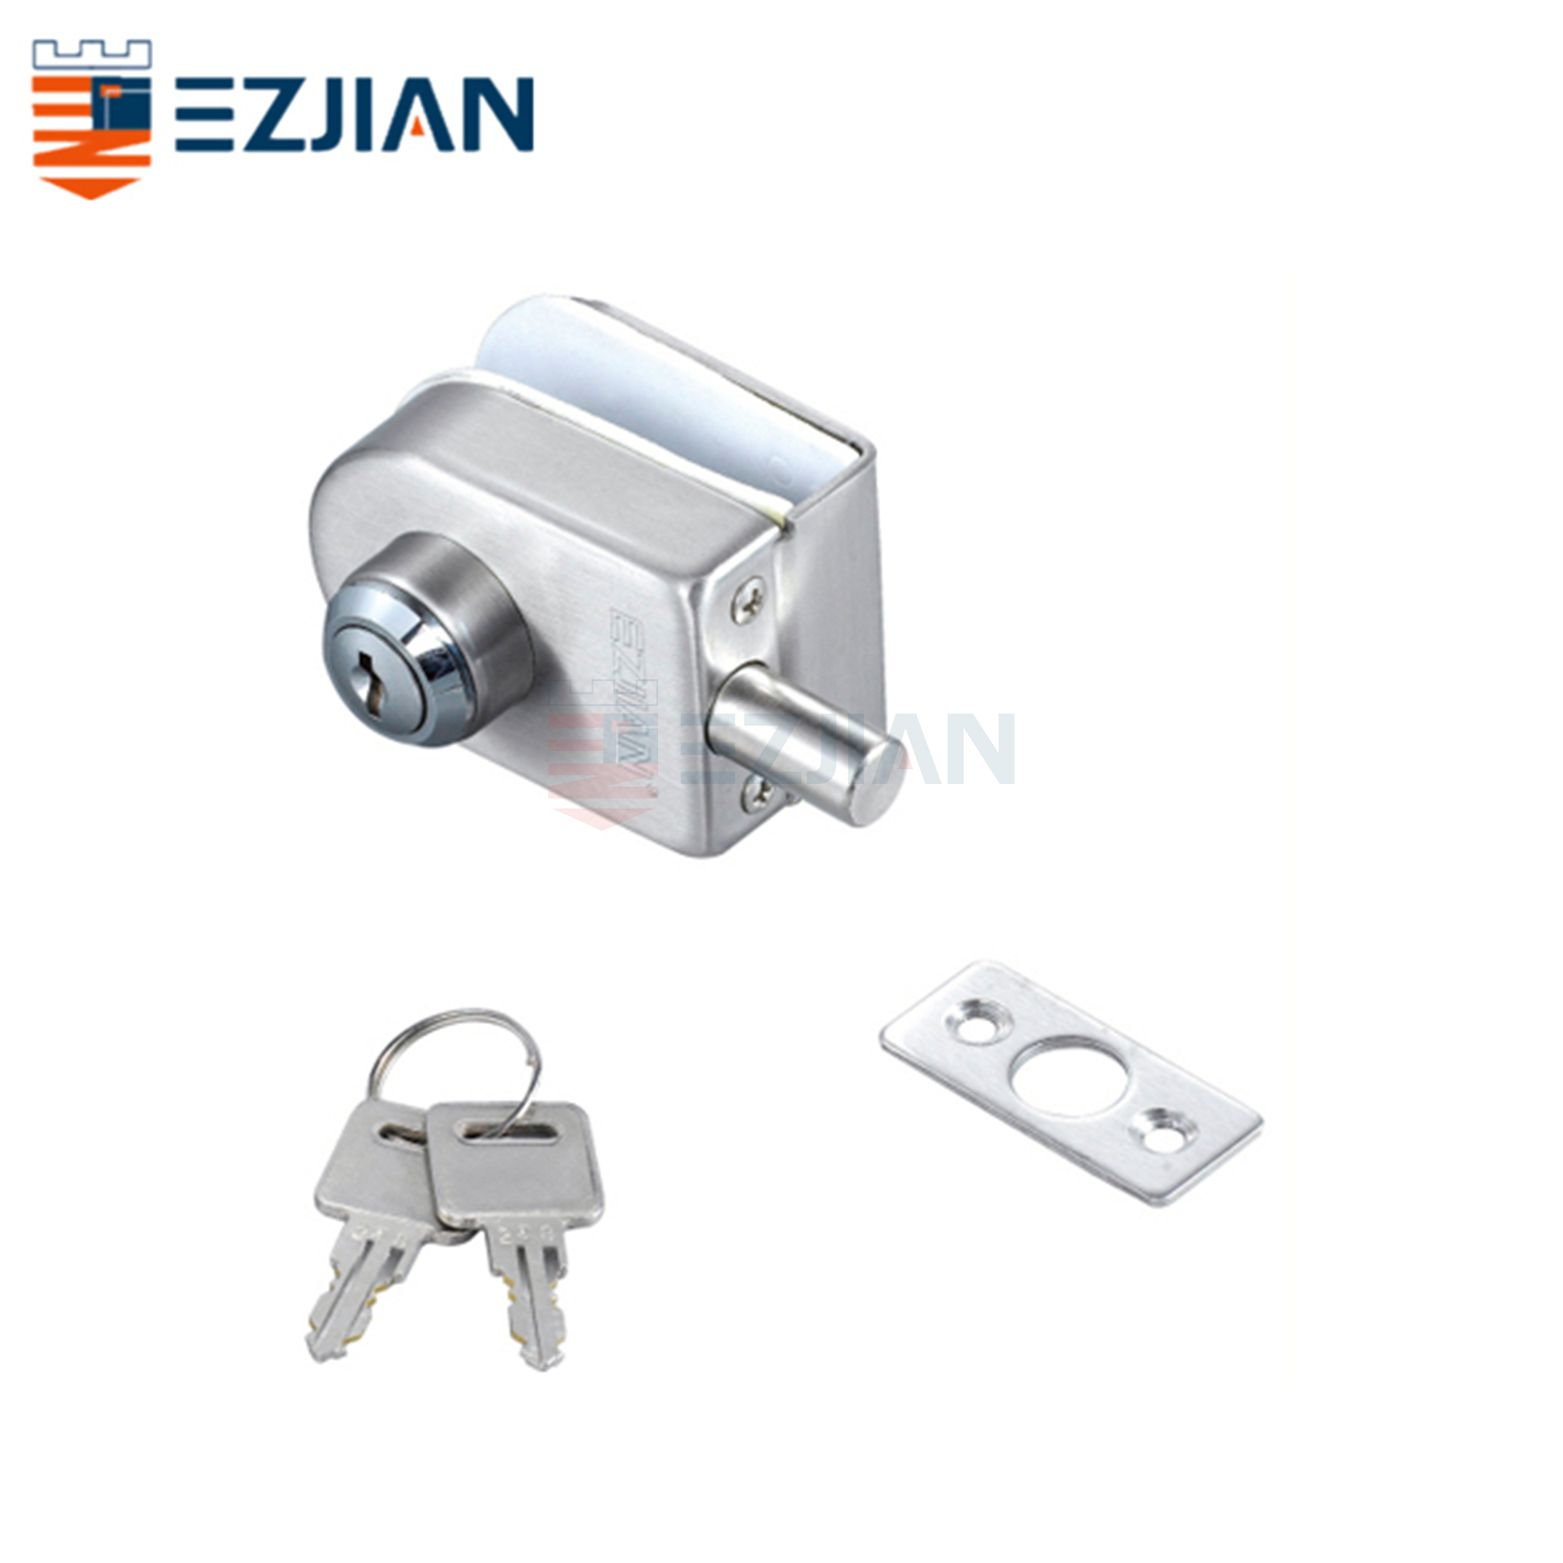 Glass Gate Lock EJ-9017